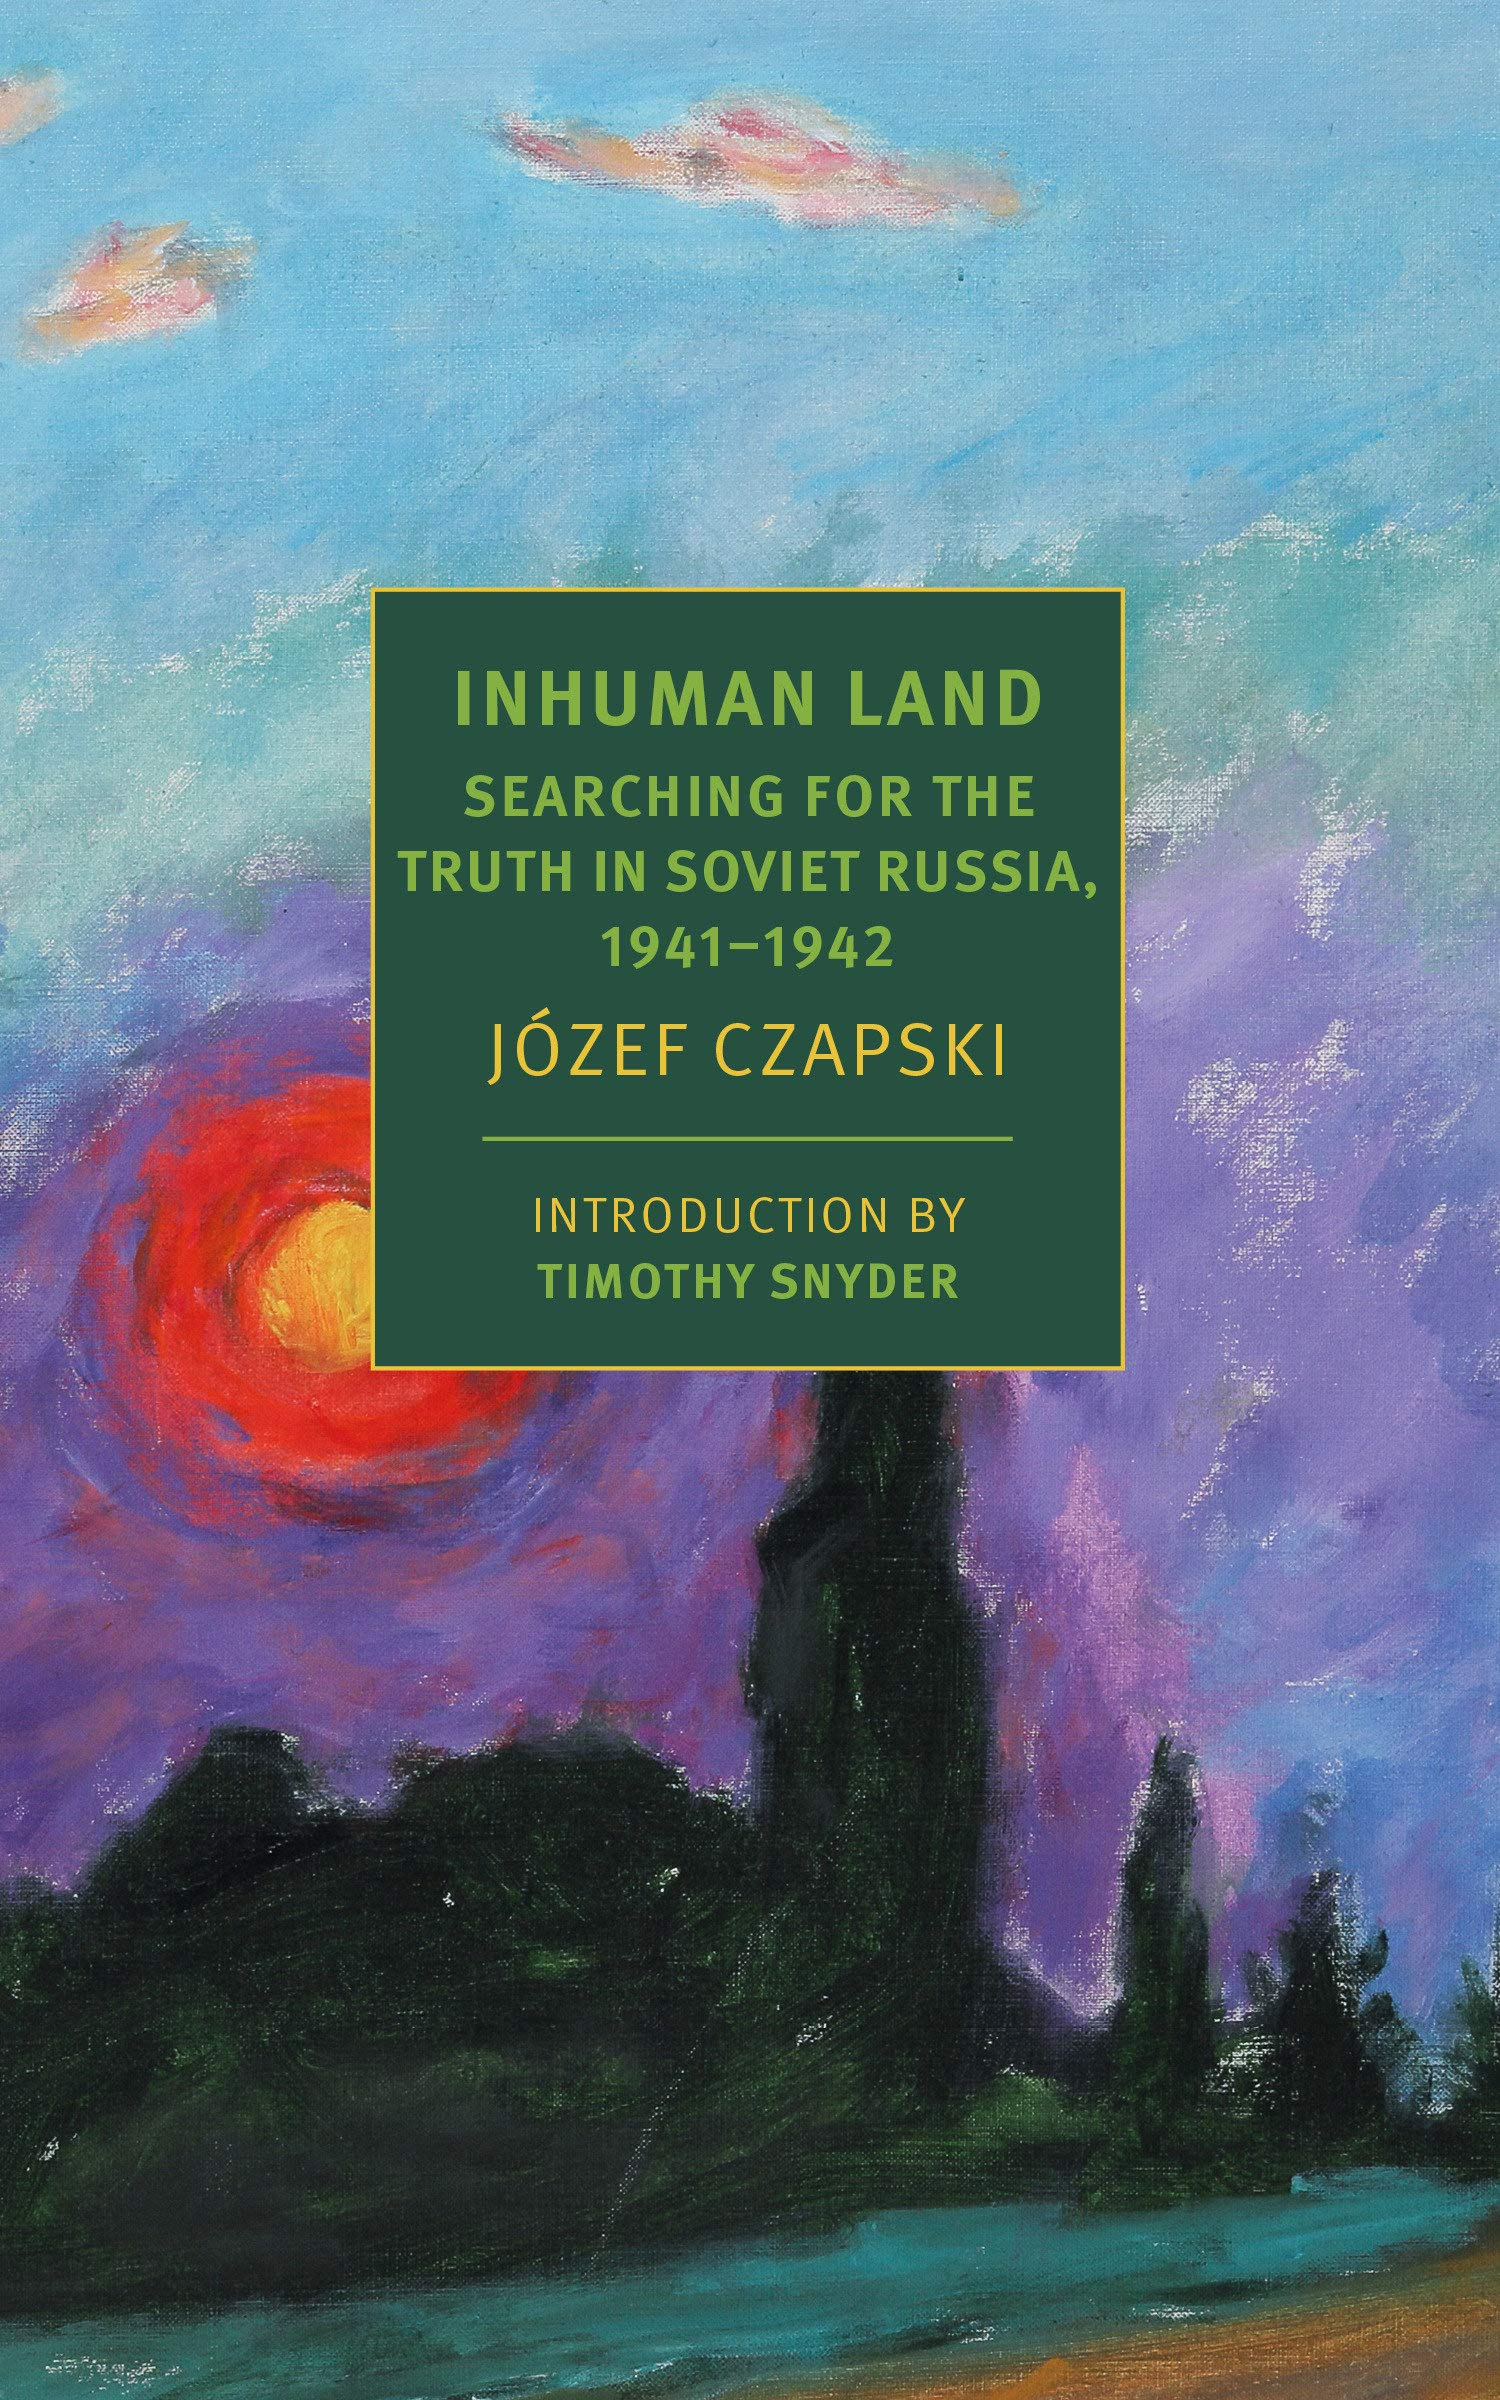 Inhuman Land: Searching for the Truth in Soviet